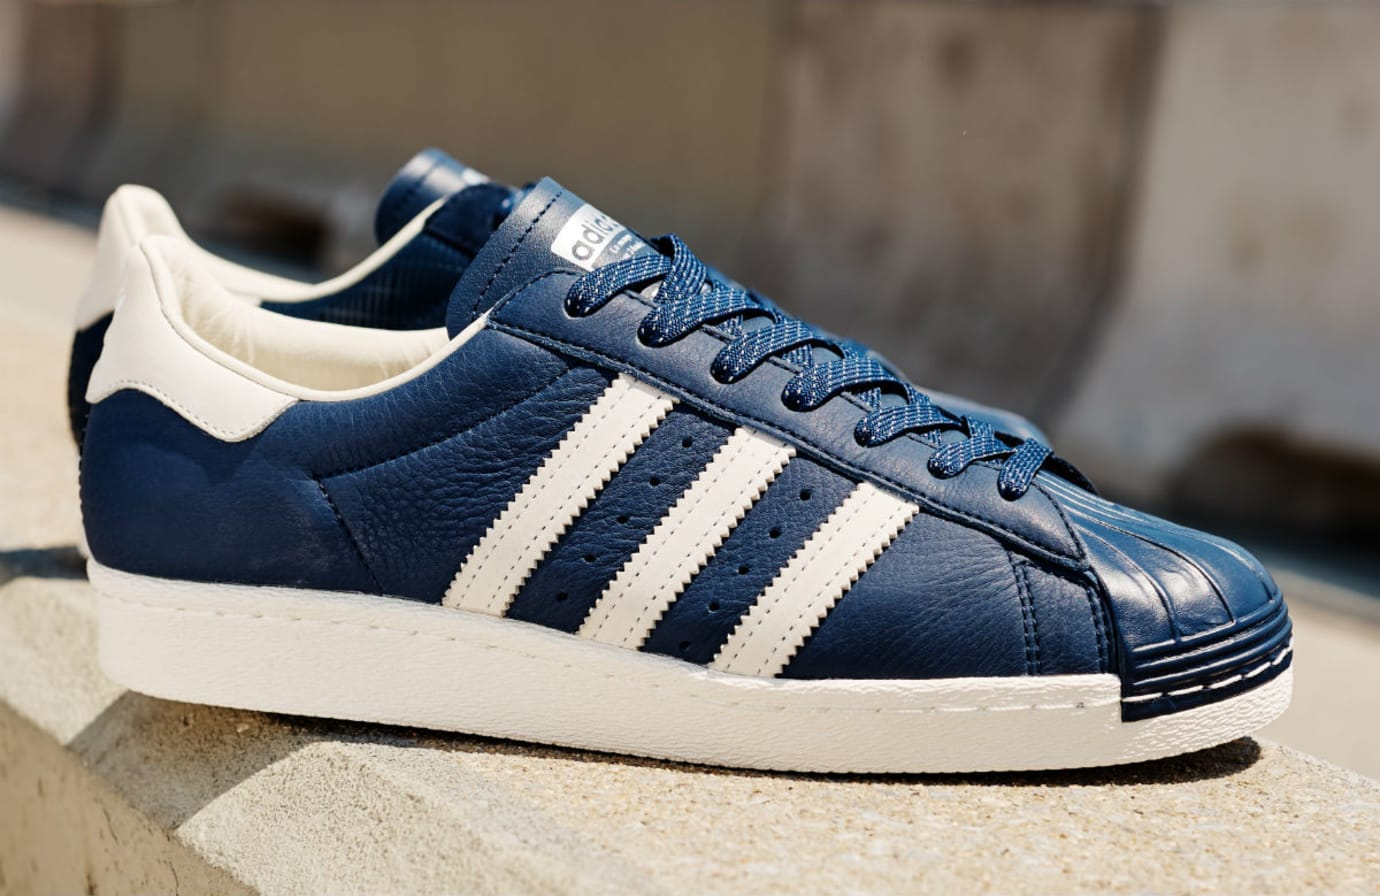 Adidas Superstar NYC Flagship Exclusive (3)